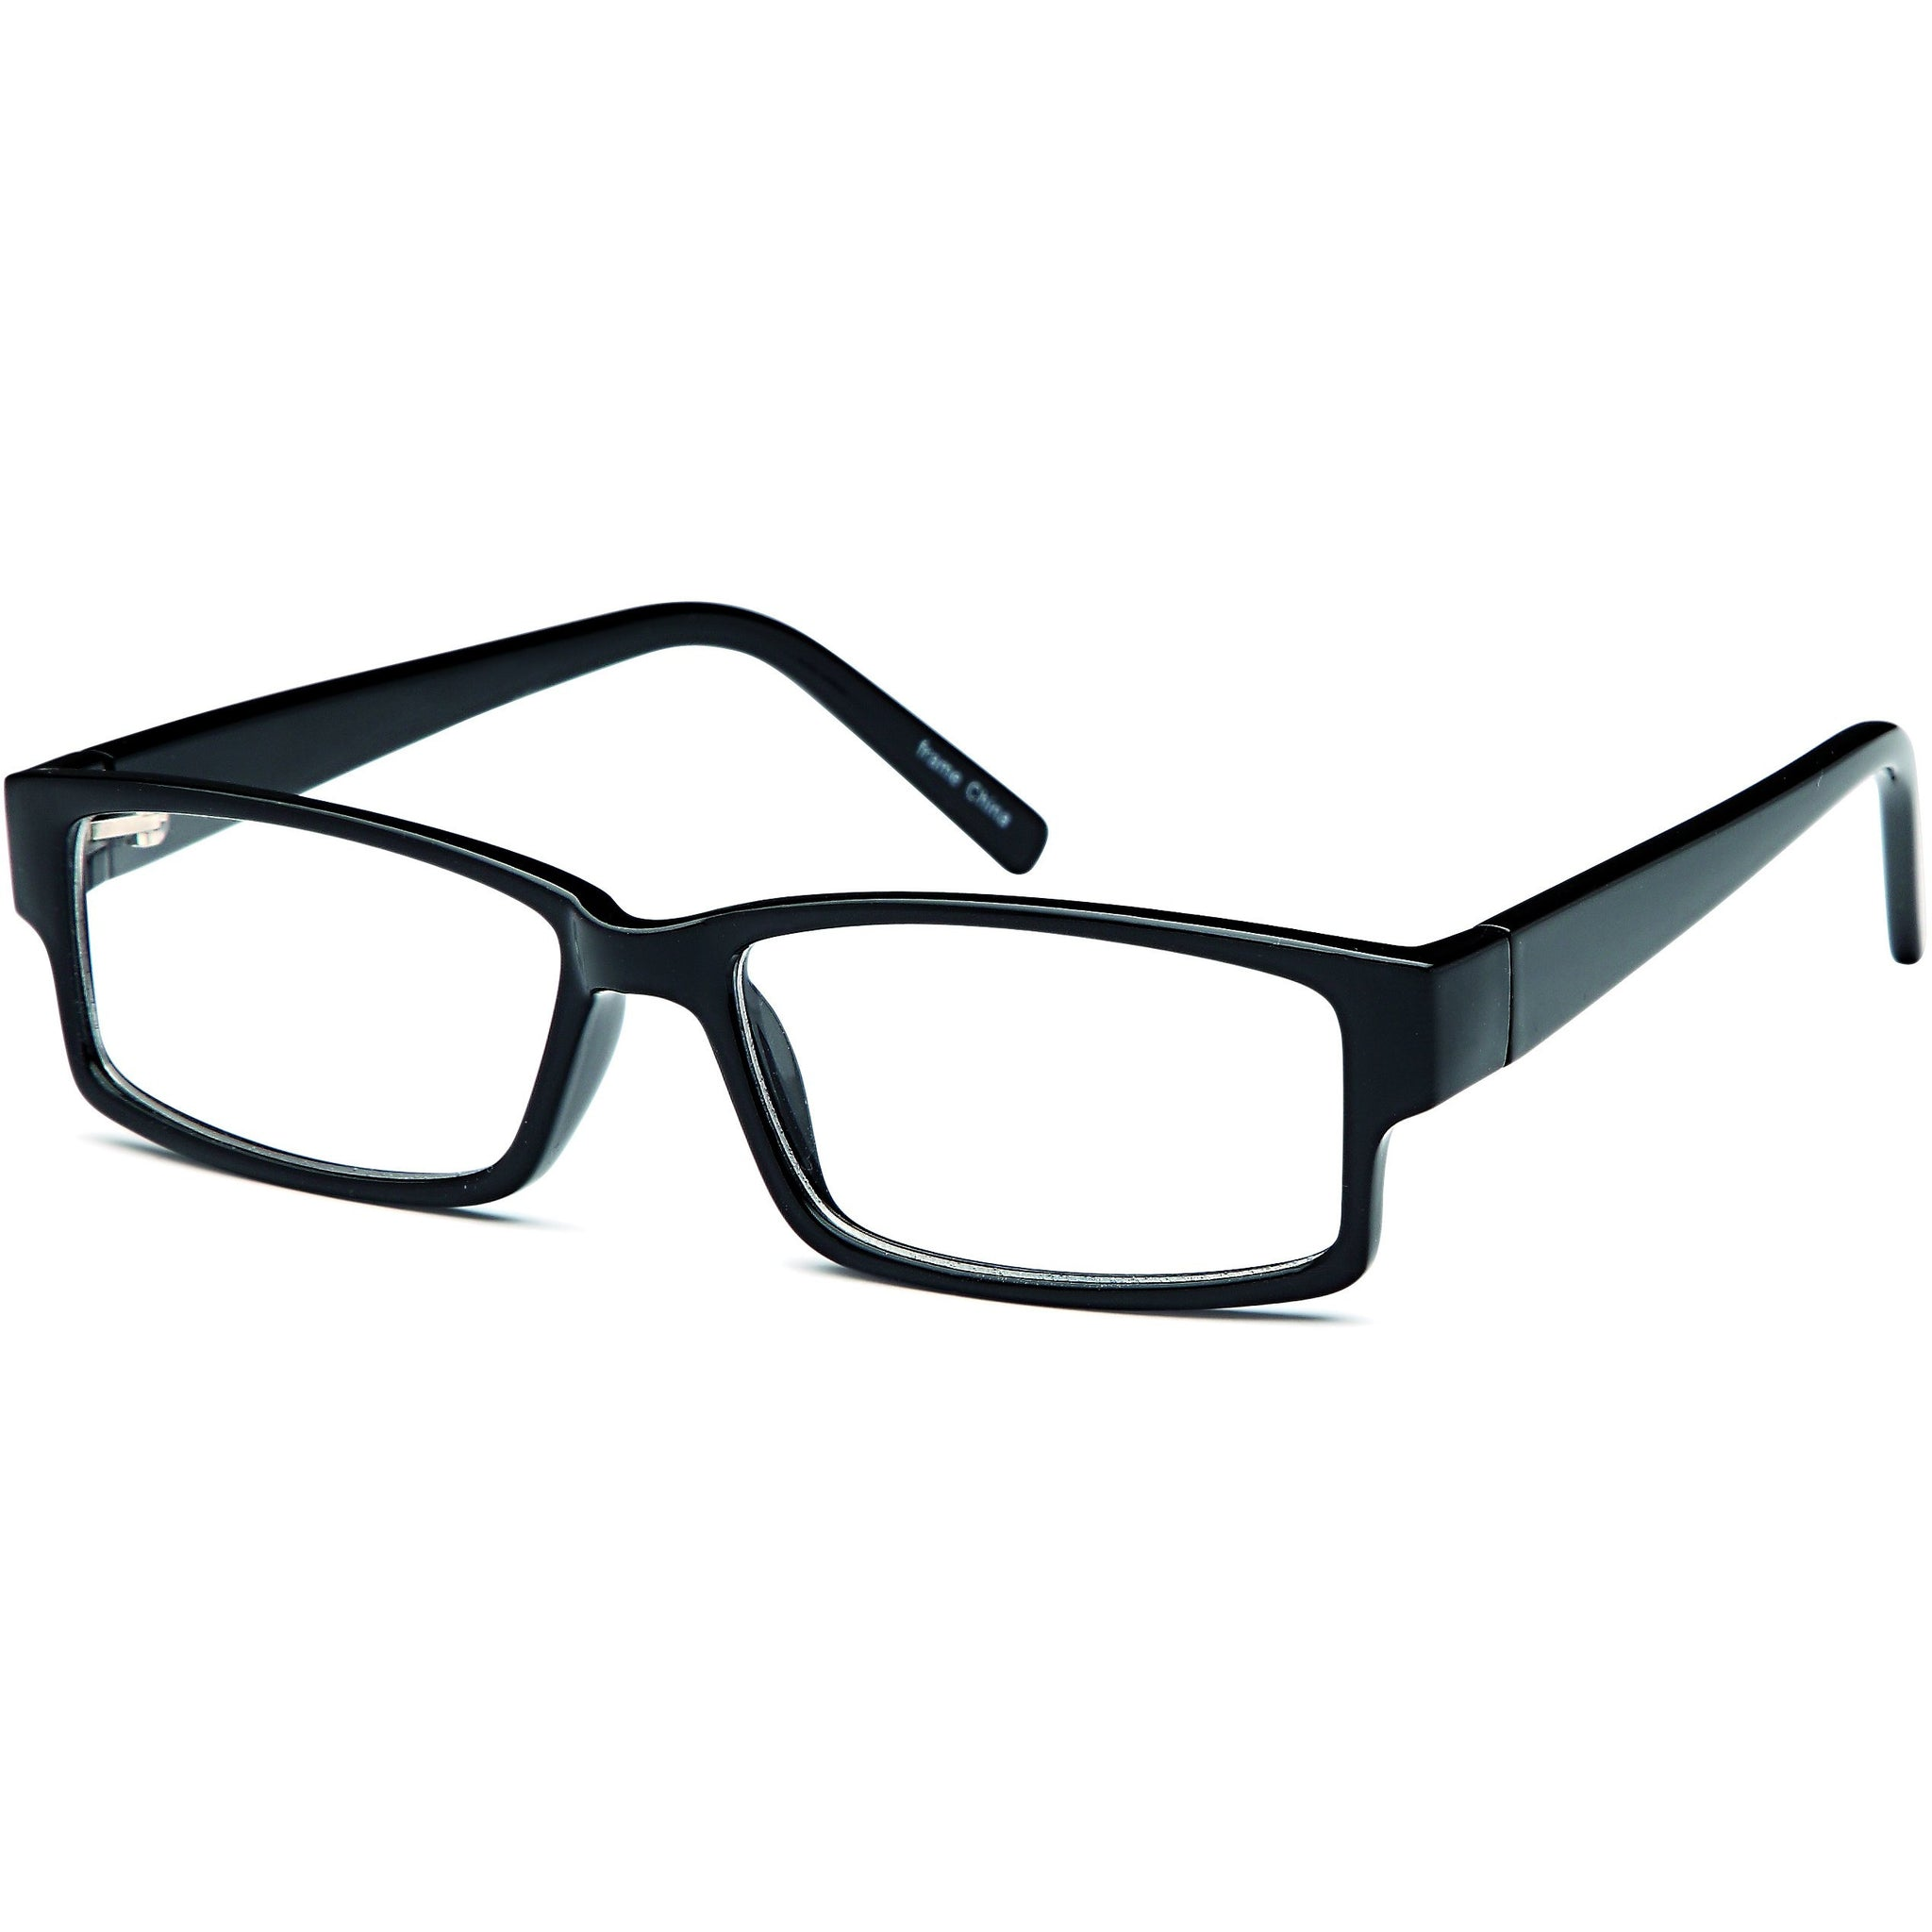 2U Prescription Glasses U 213 Optical Eyeglasses Frame